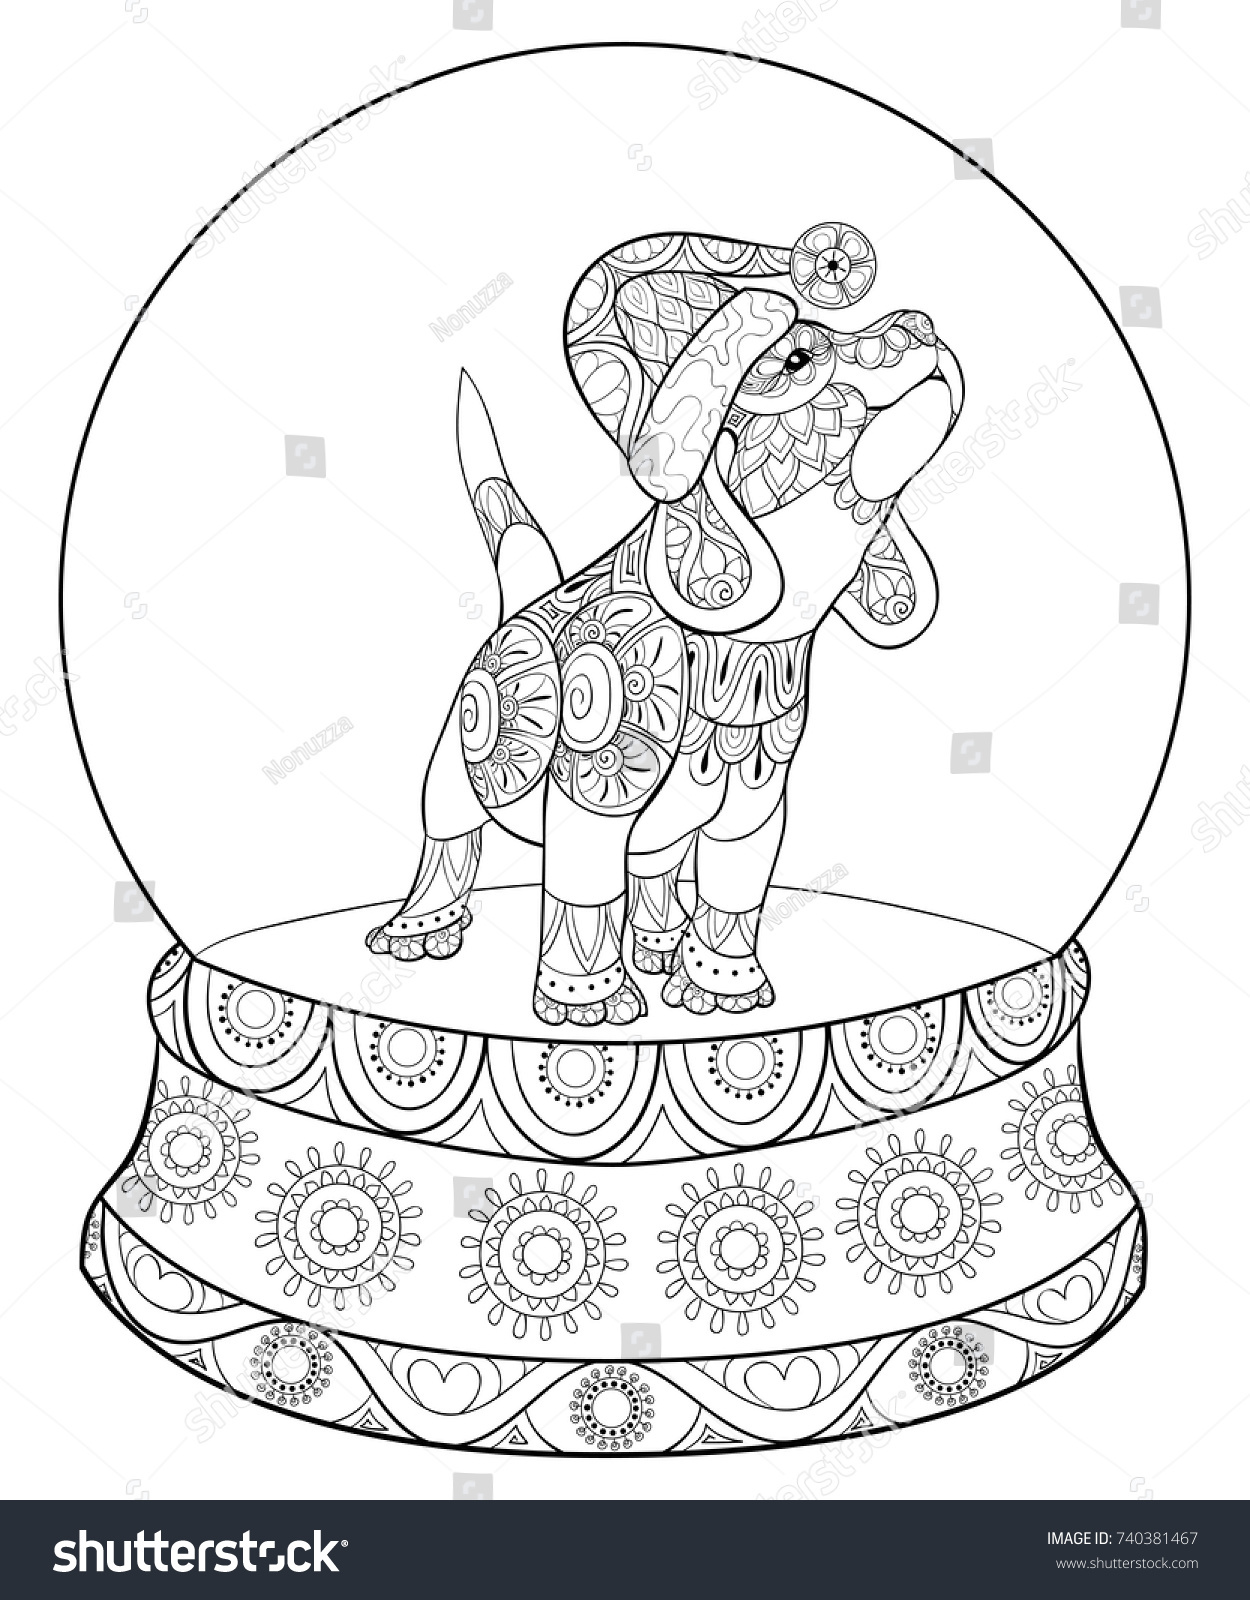 Christmas Dog Coloring Page With Adult Pagebook Cute Puppydog Stock Vector